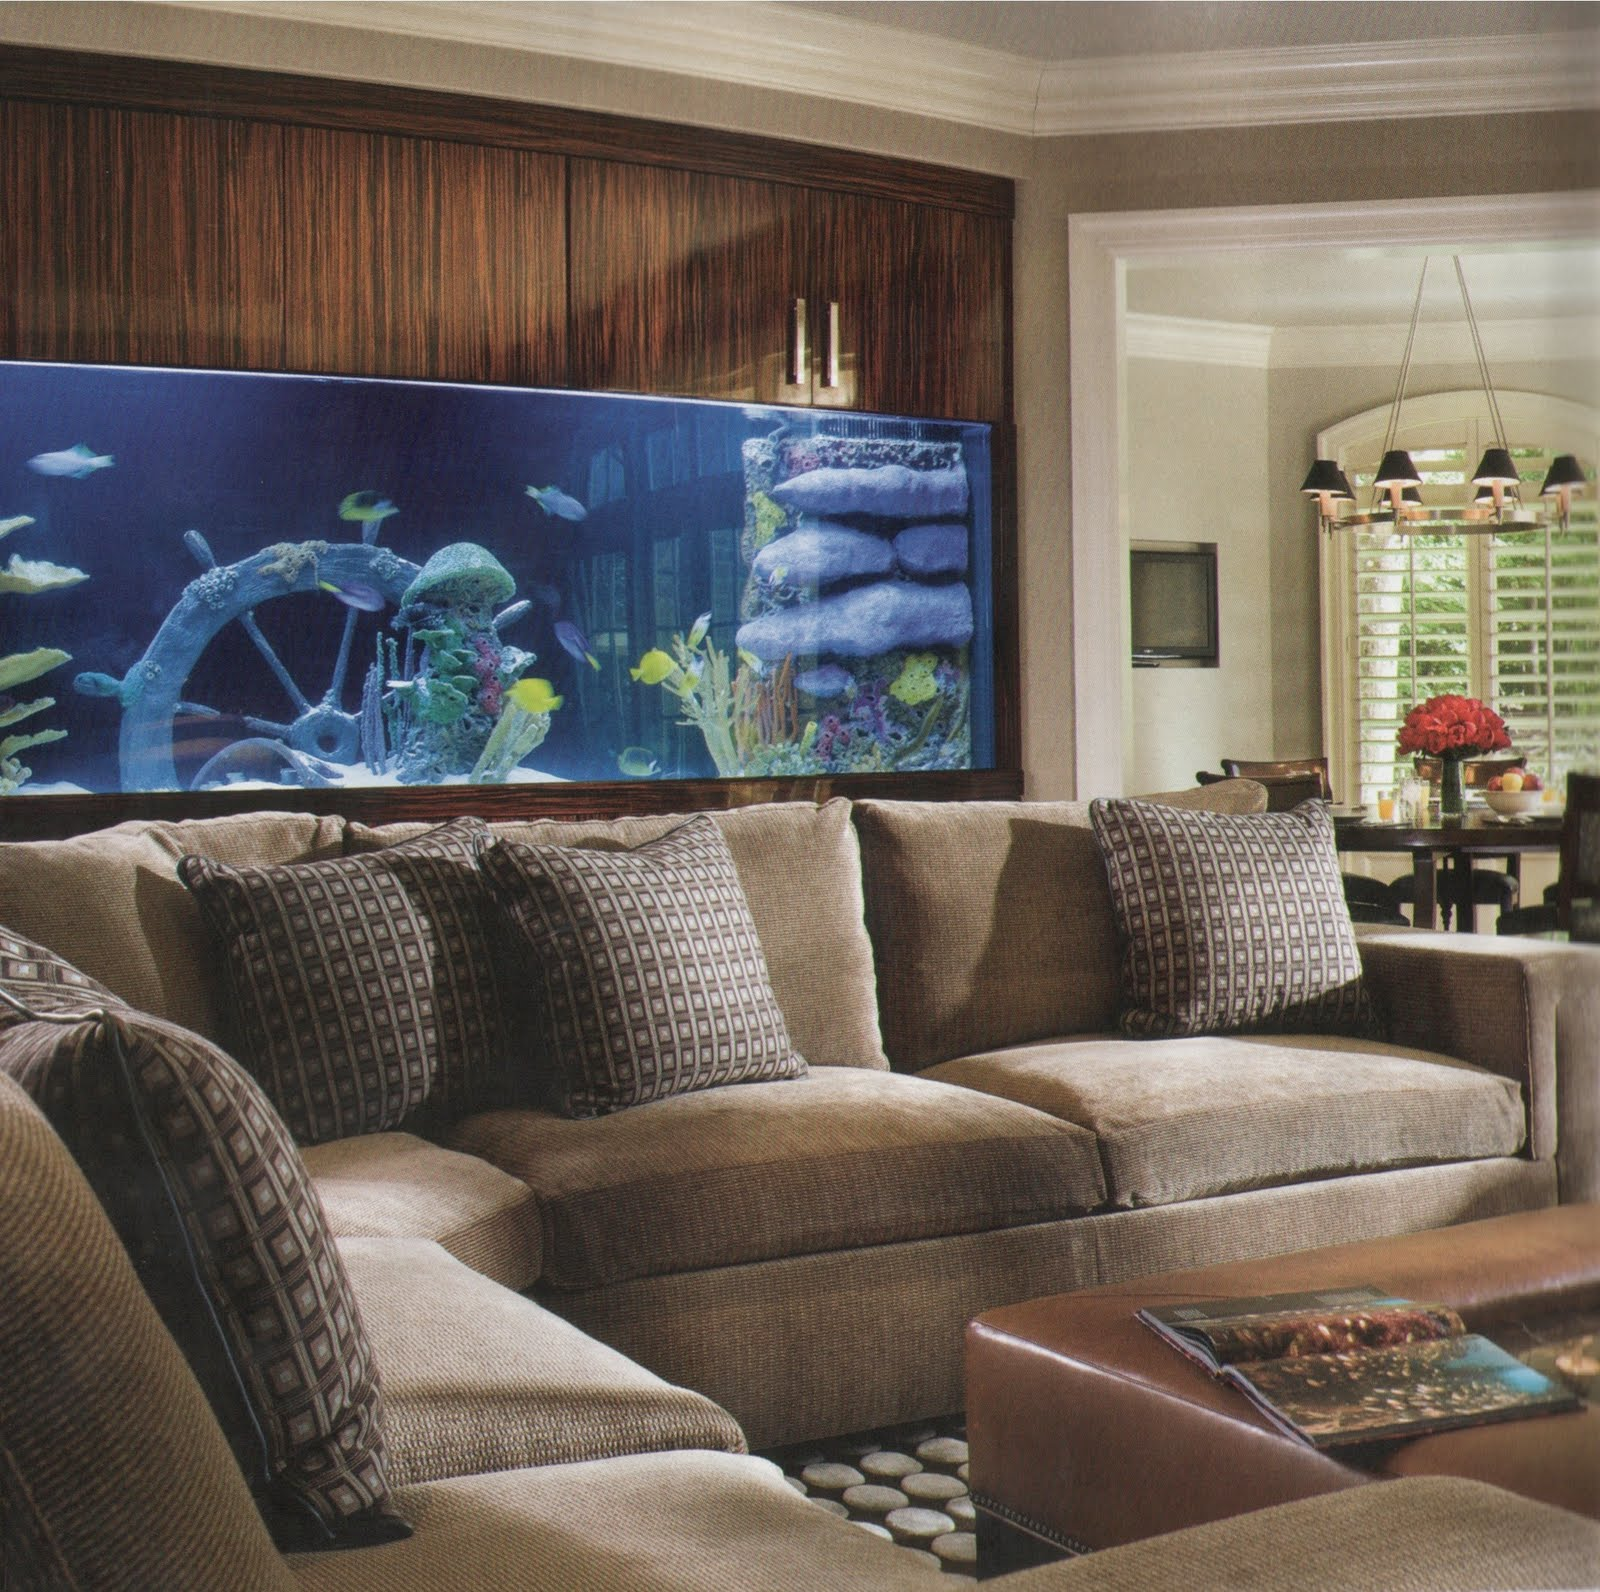 Decoration Interieur Aquarium Home Aquarium Interior Design And Deco